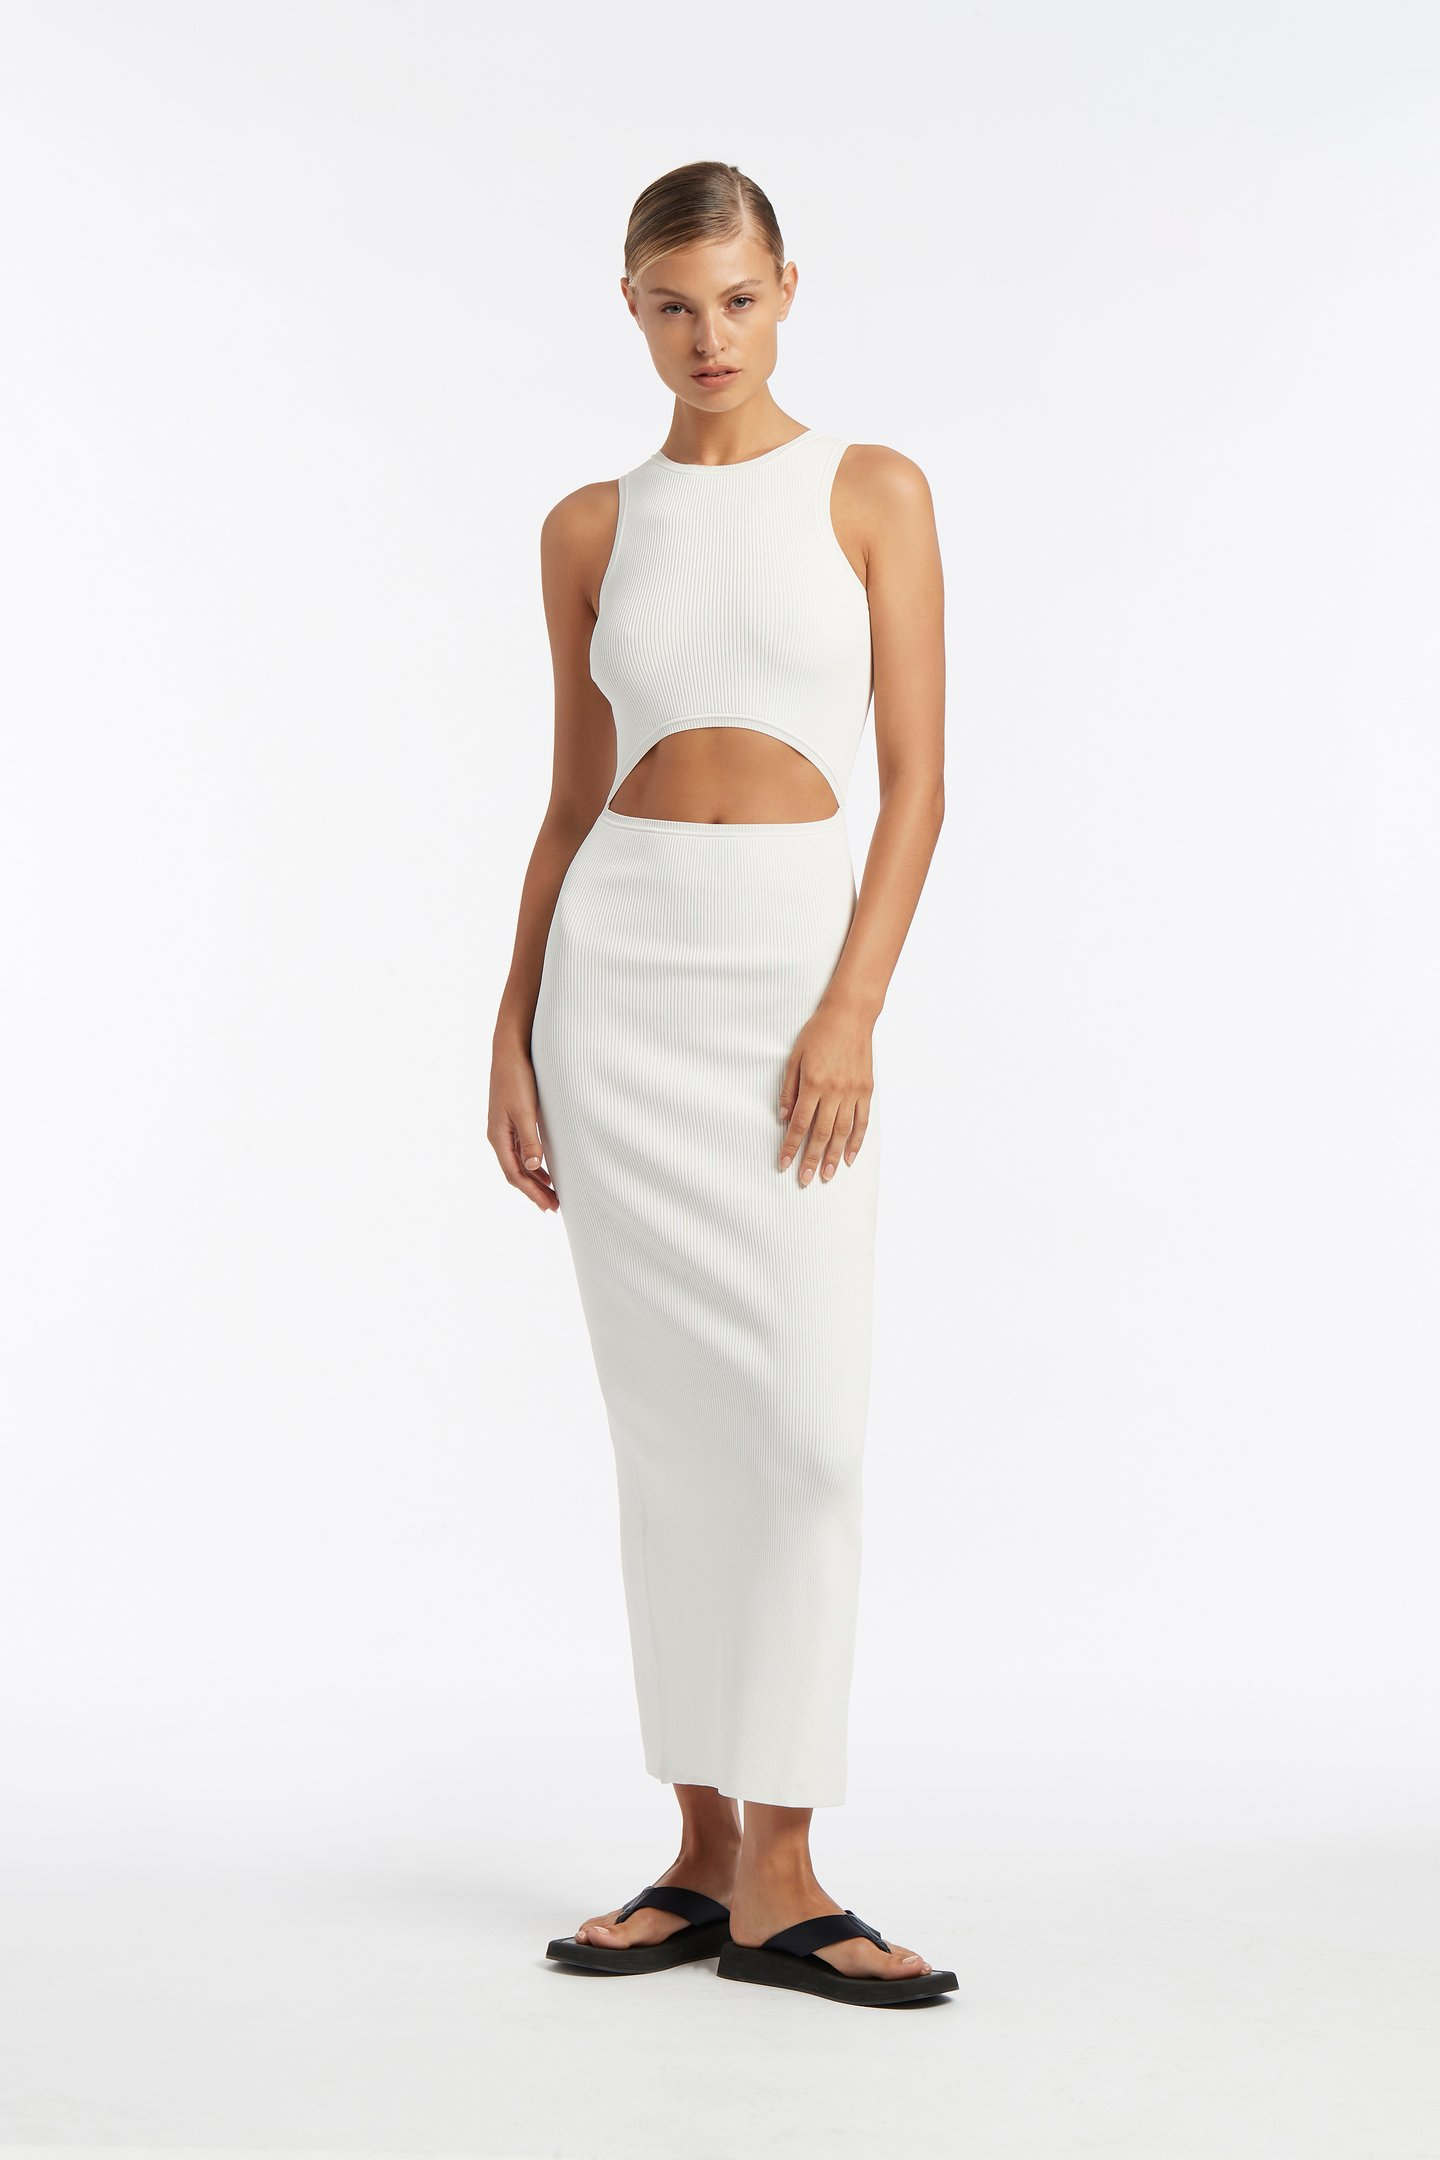 INGRID CUT OUT MIDI DRESS by sir, available on sirthelabel.com for $330 Elsa Hosk Dress Exact Product